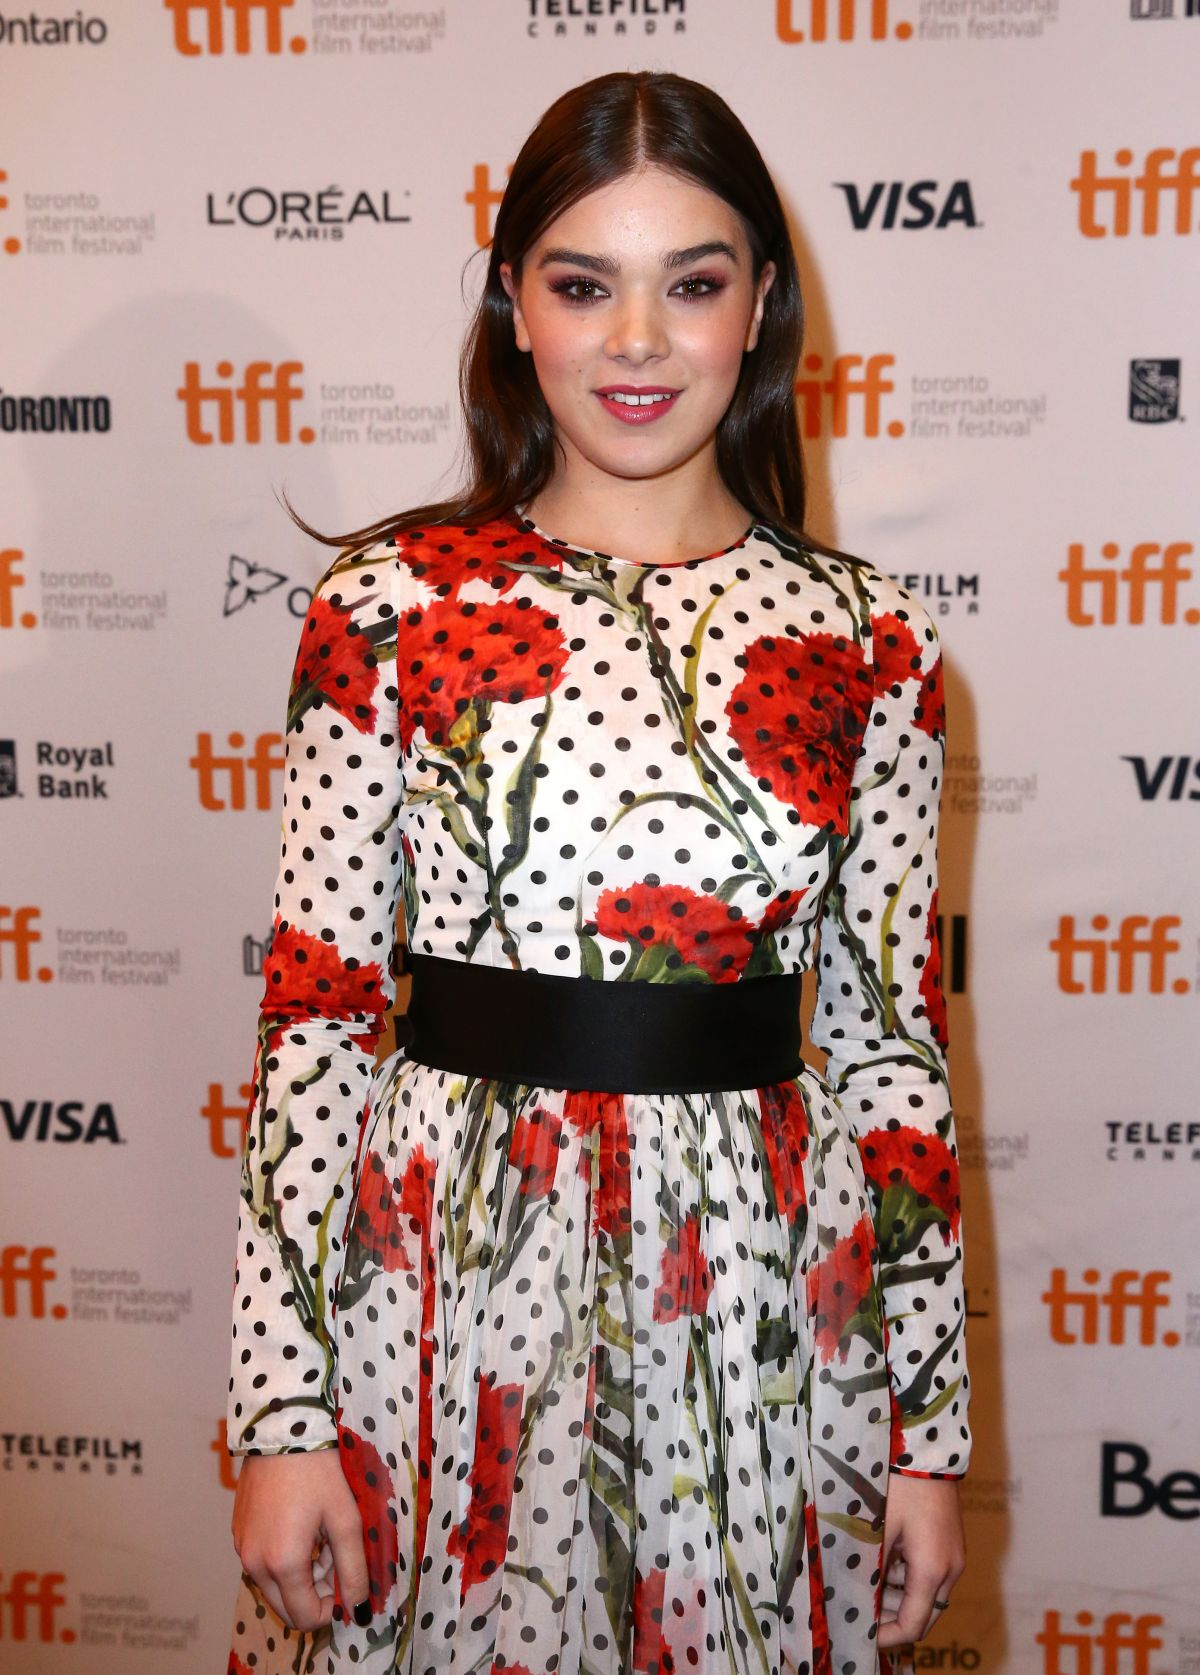 HAILEE STEINFELD at The Keeping Room premiere in Toronto